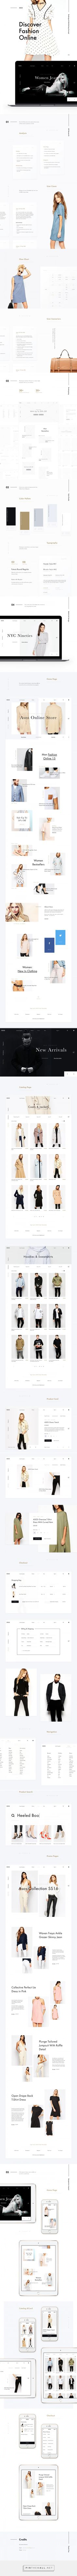 Asos. Redesign & Rethinking Concept on Behance - created via https://pinthemall.net